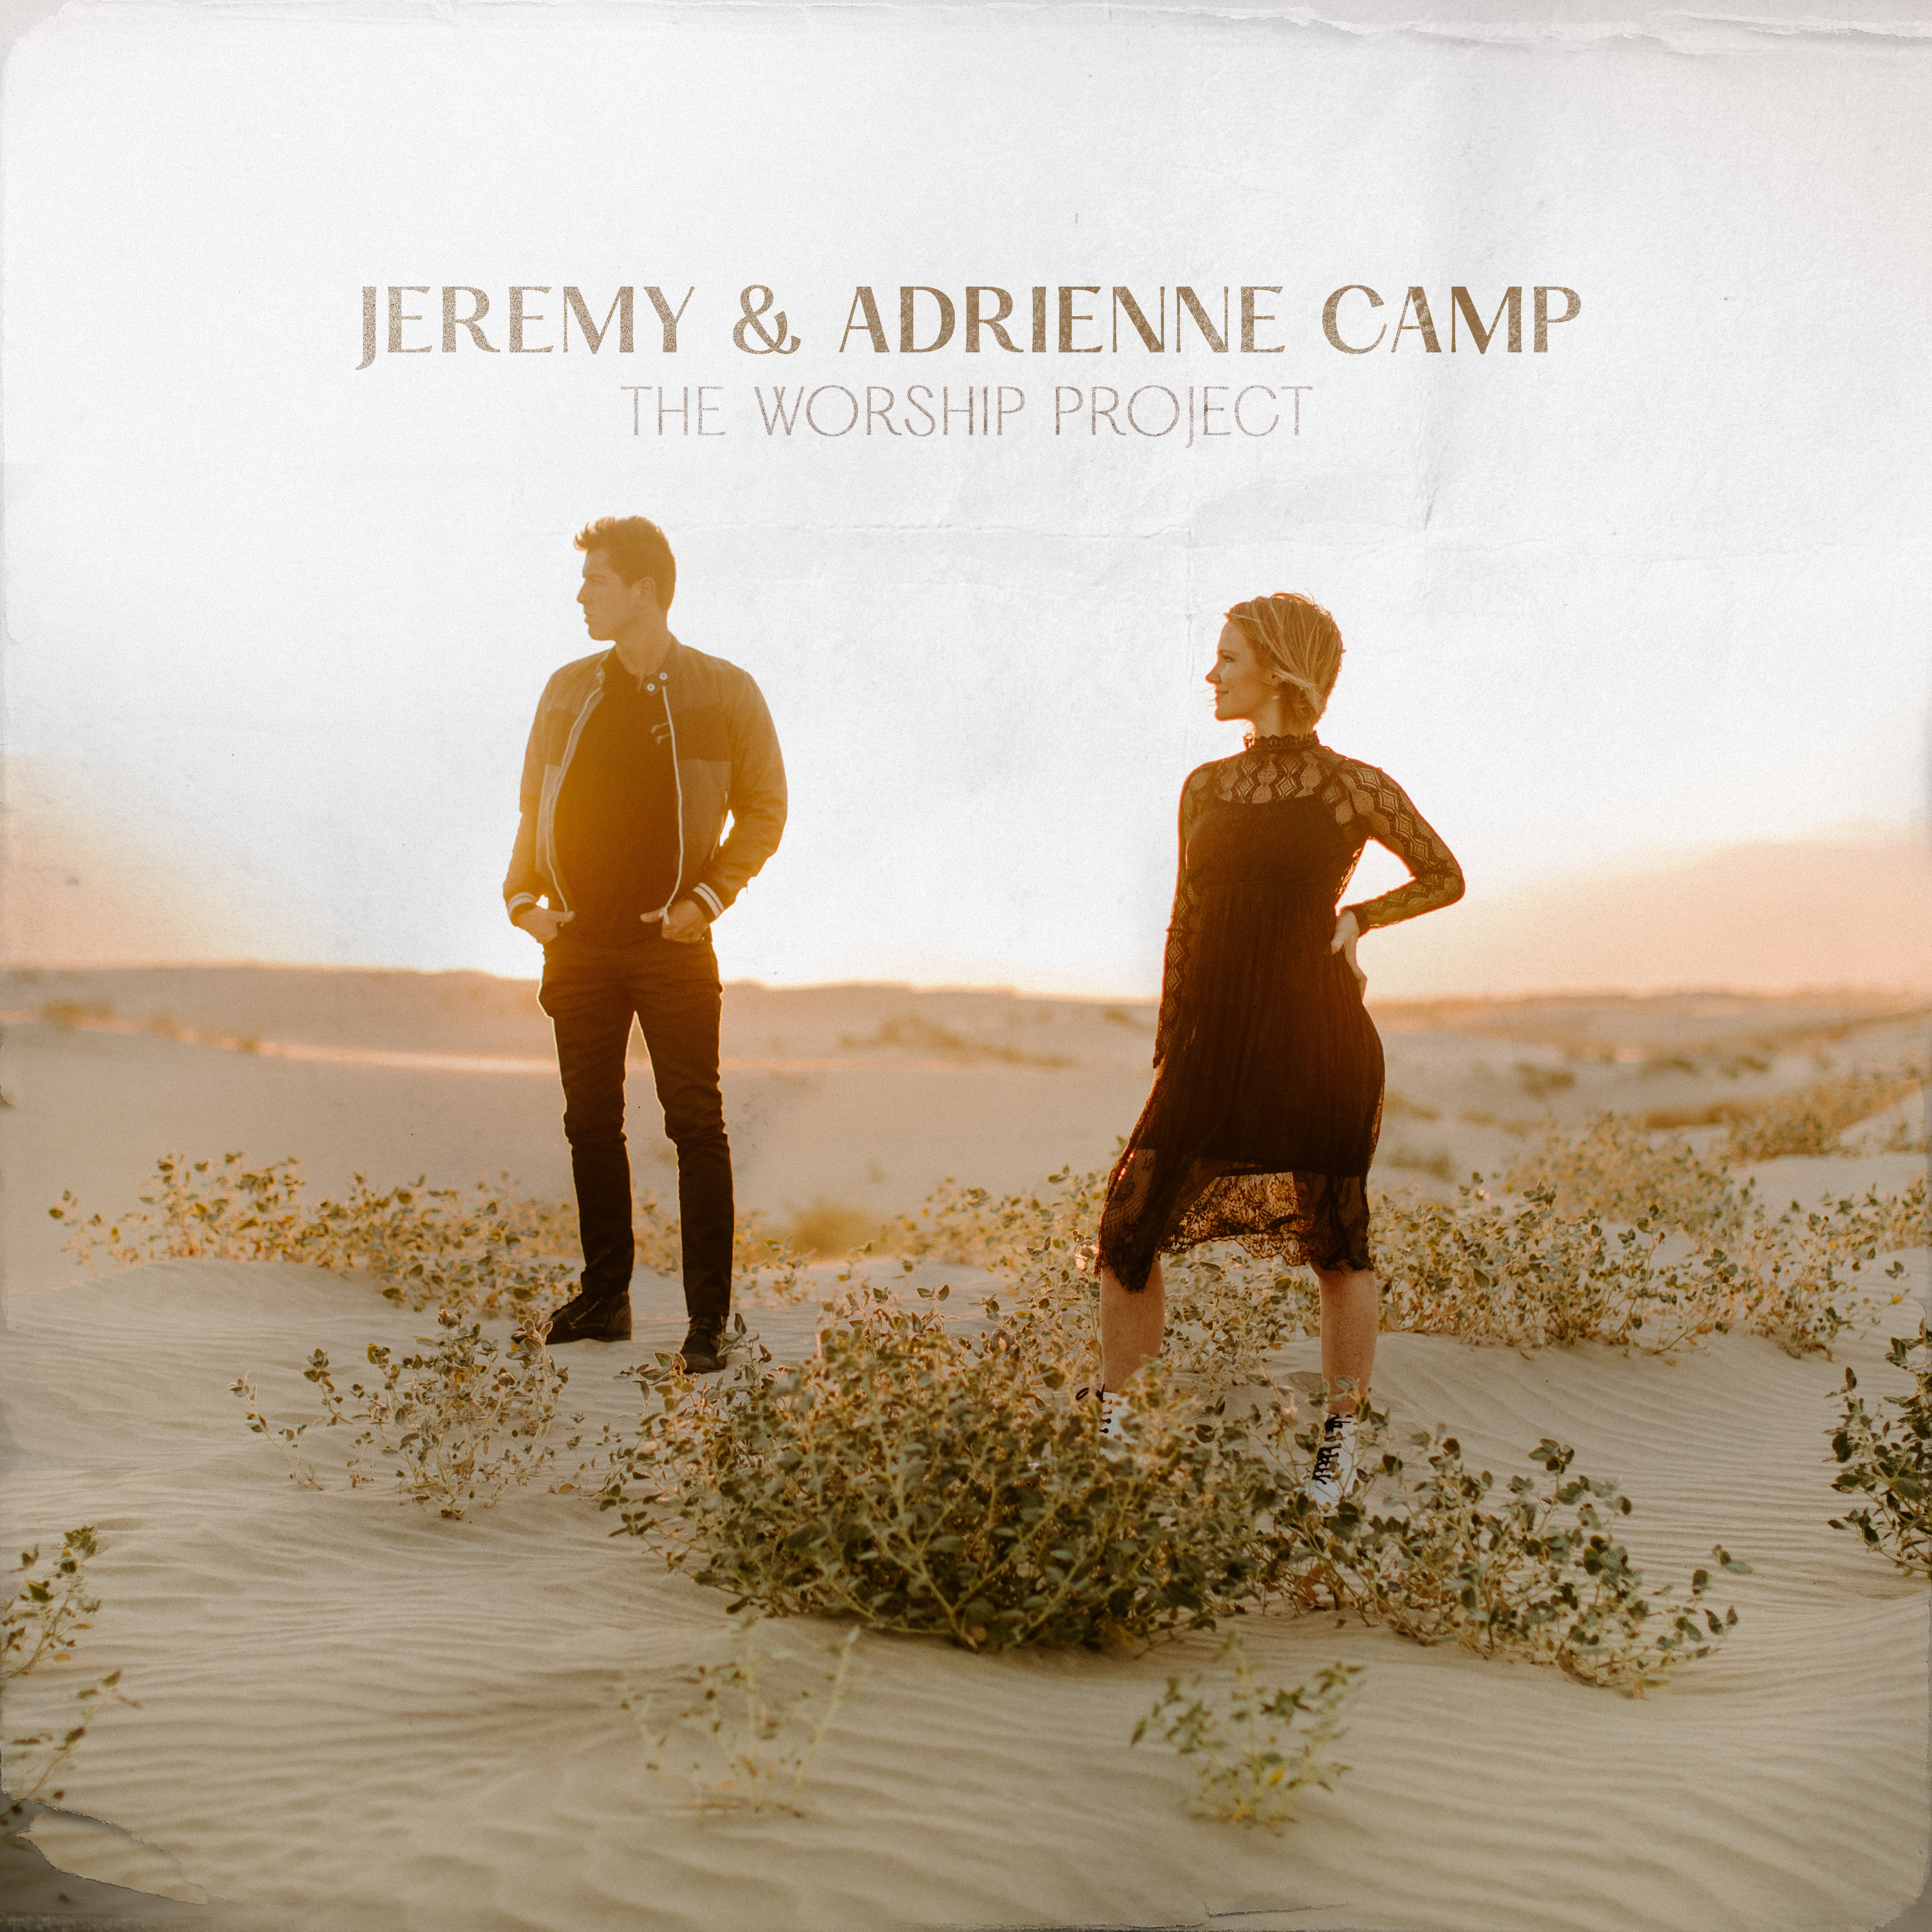 The Worship Project by Jeremy and Adrienne Camp